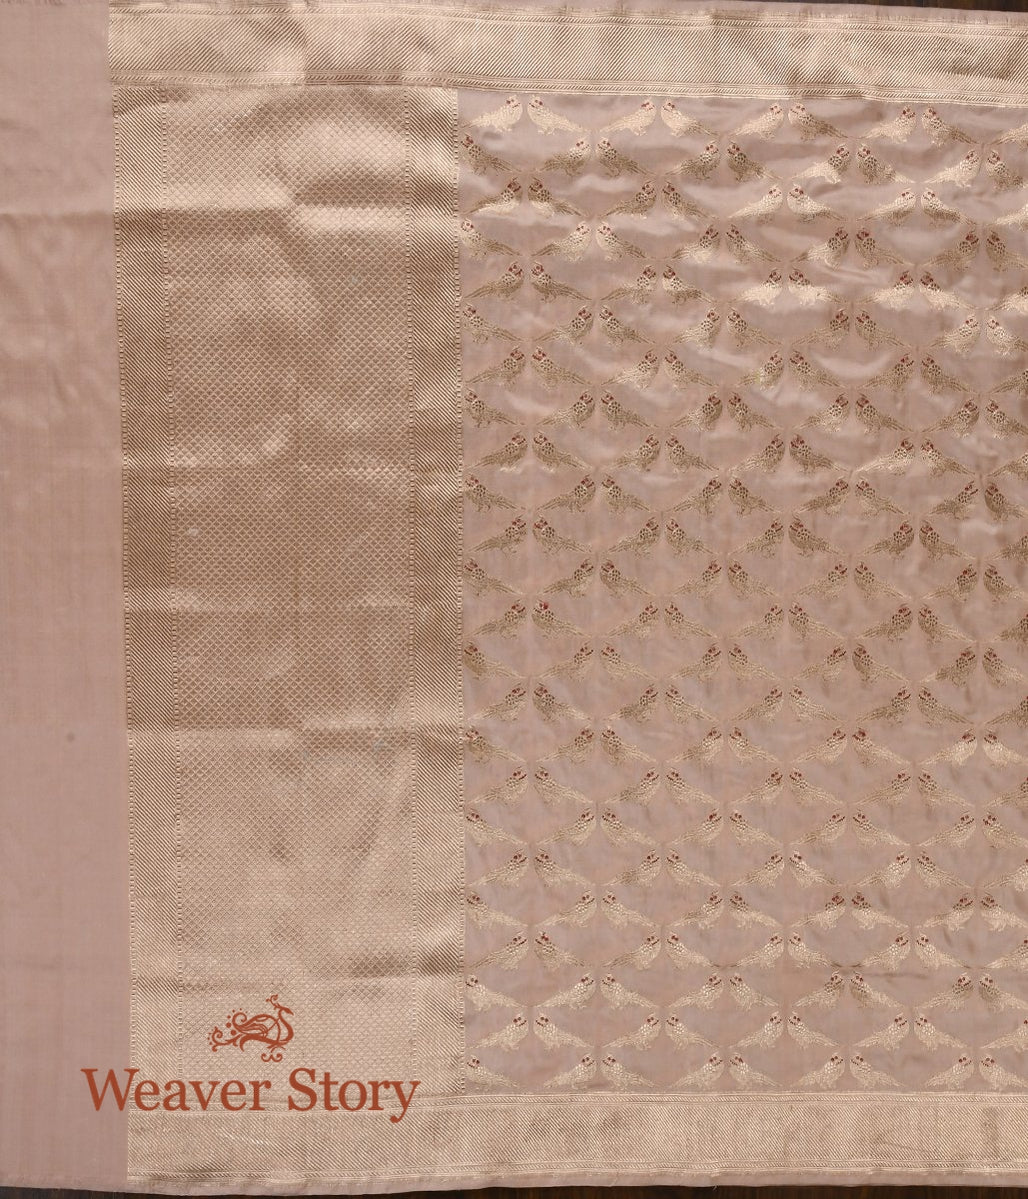 Handwoven Peach Banarasi Kadhwa Dupatta with Bird Motifs